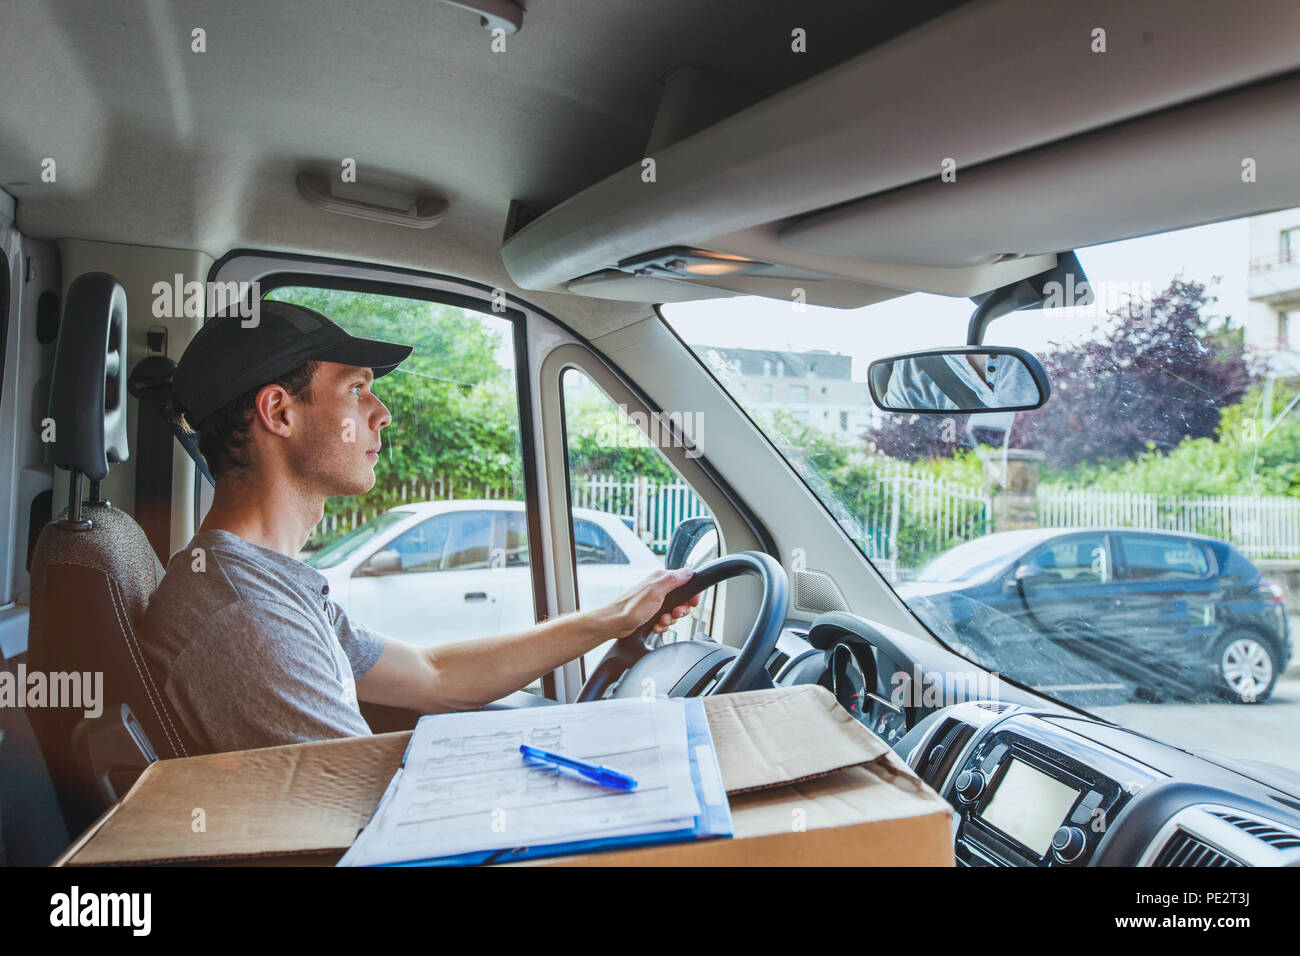 delivery transportation service job, driver man with package box driving truck car vehicle - Stock Image